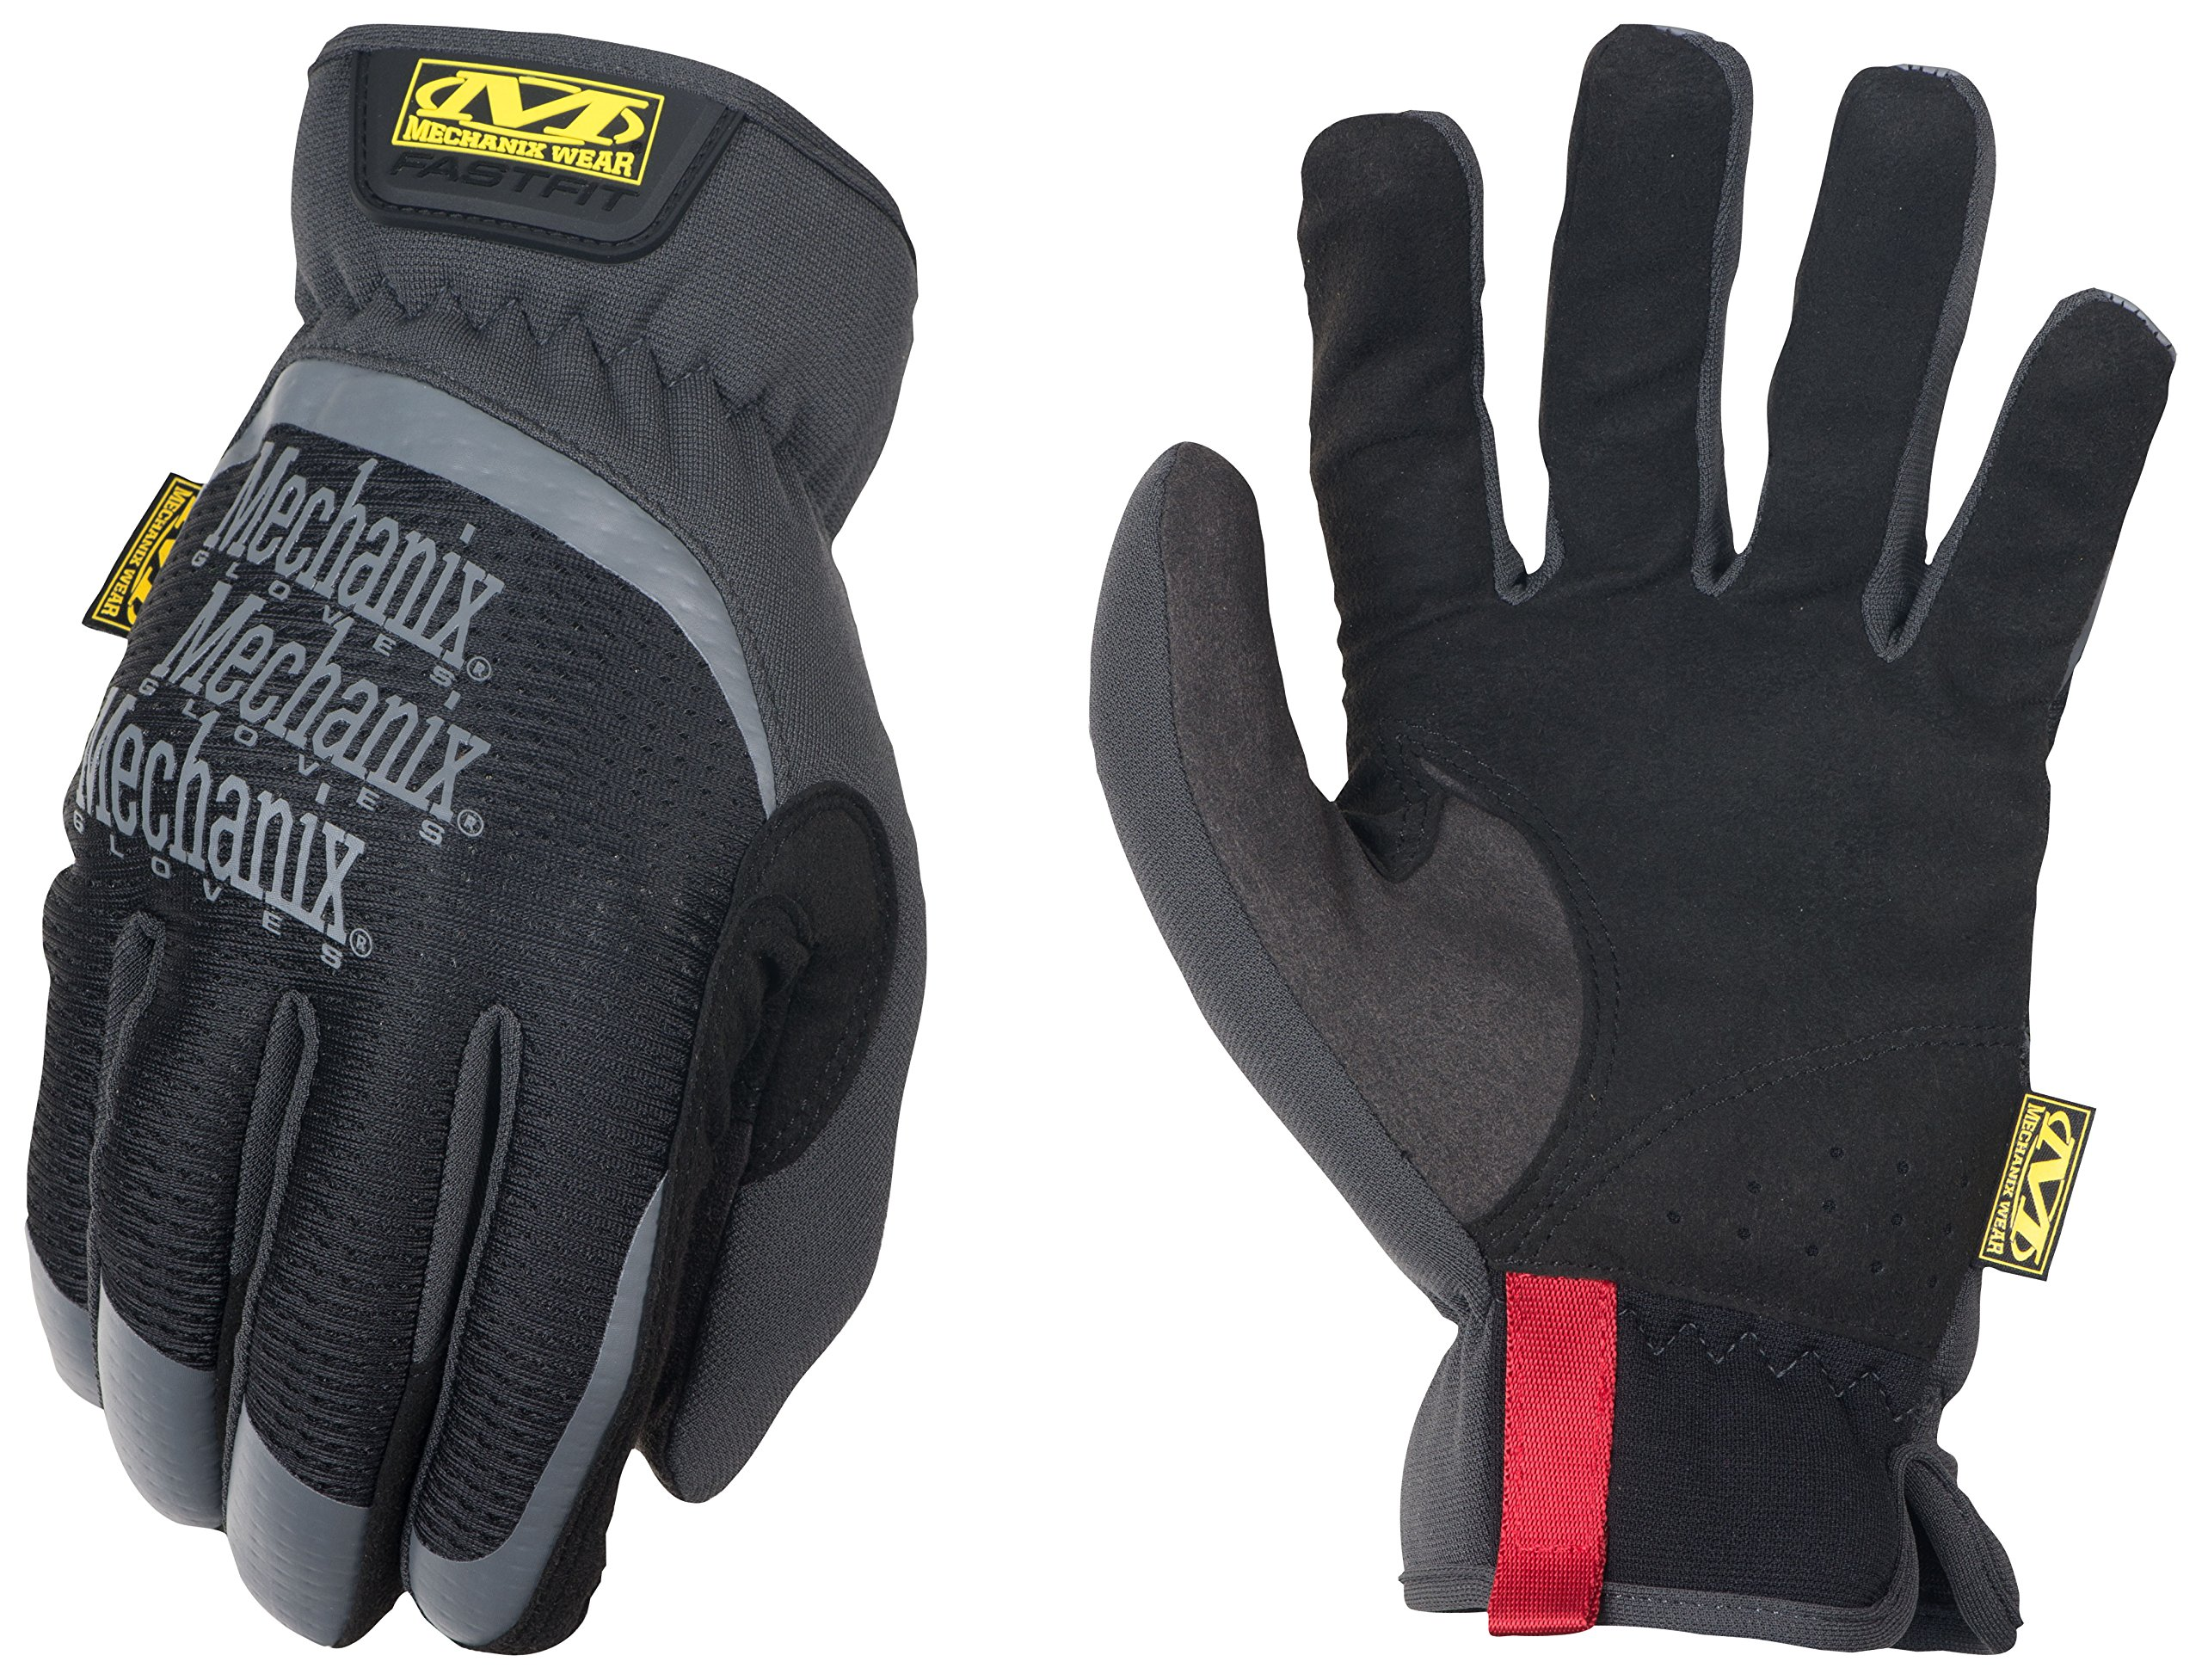 Mechanix Wear 185184 Slip-On Elastic-Cuff Mechanic's Glove Fast Fit Gloves, L